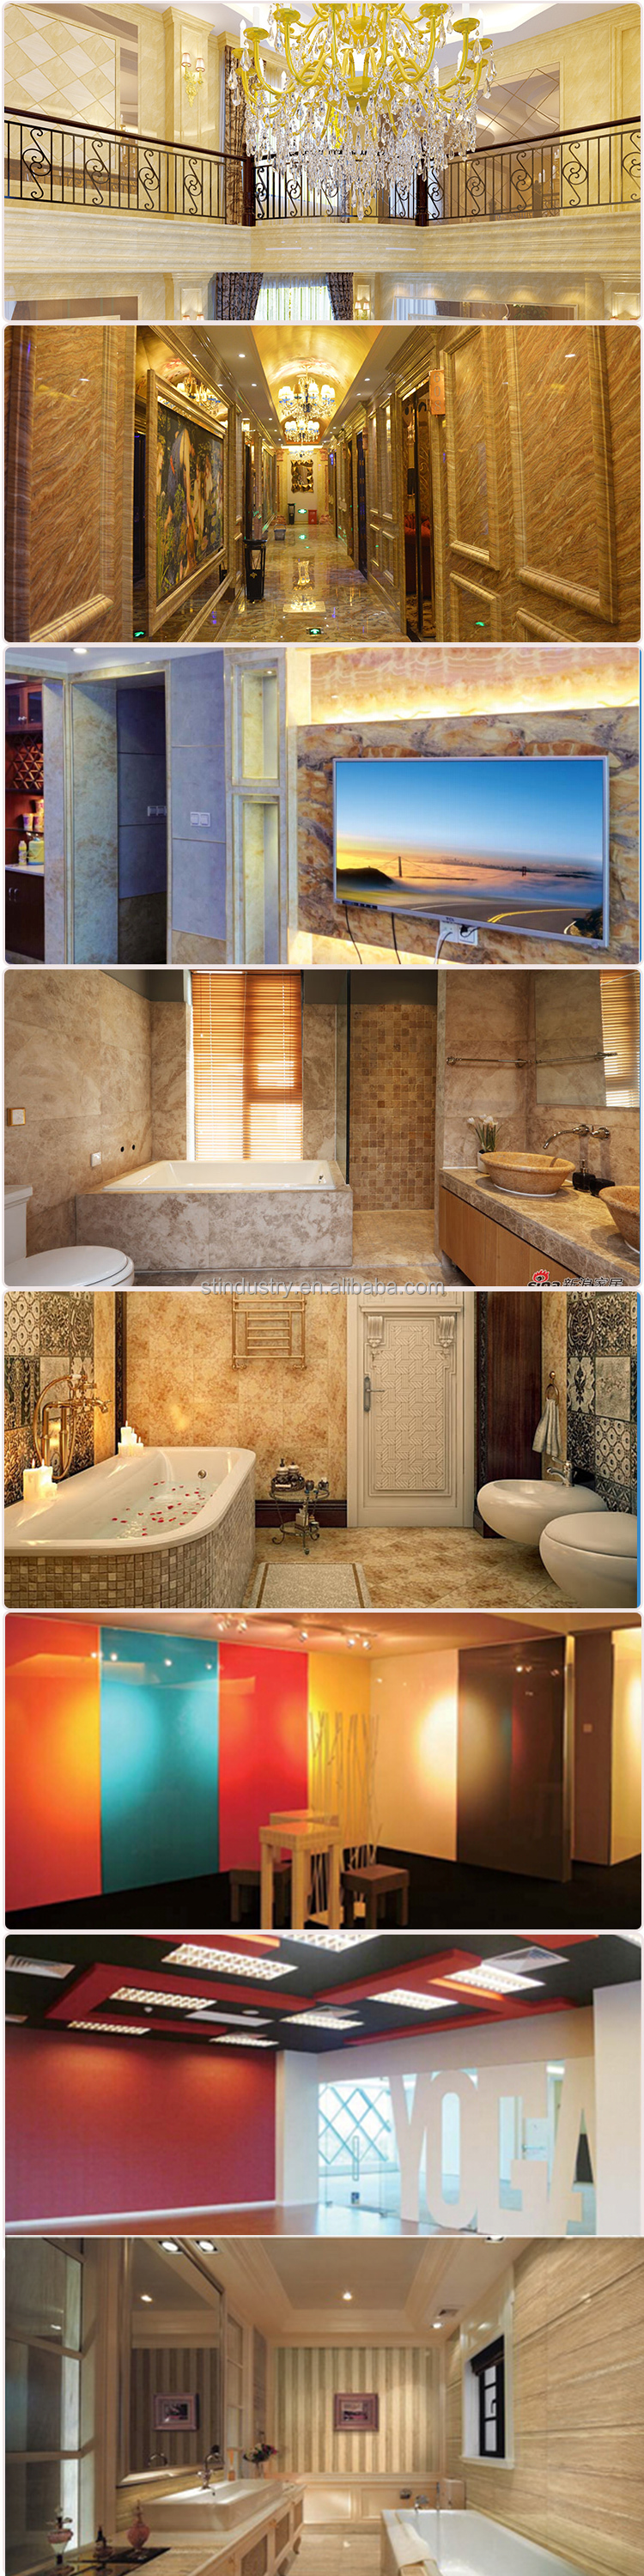 Bathroom wall covering